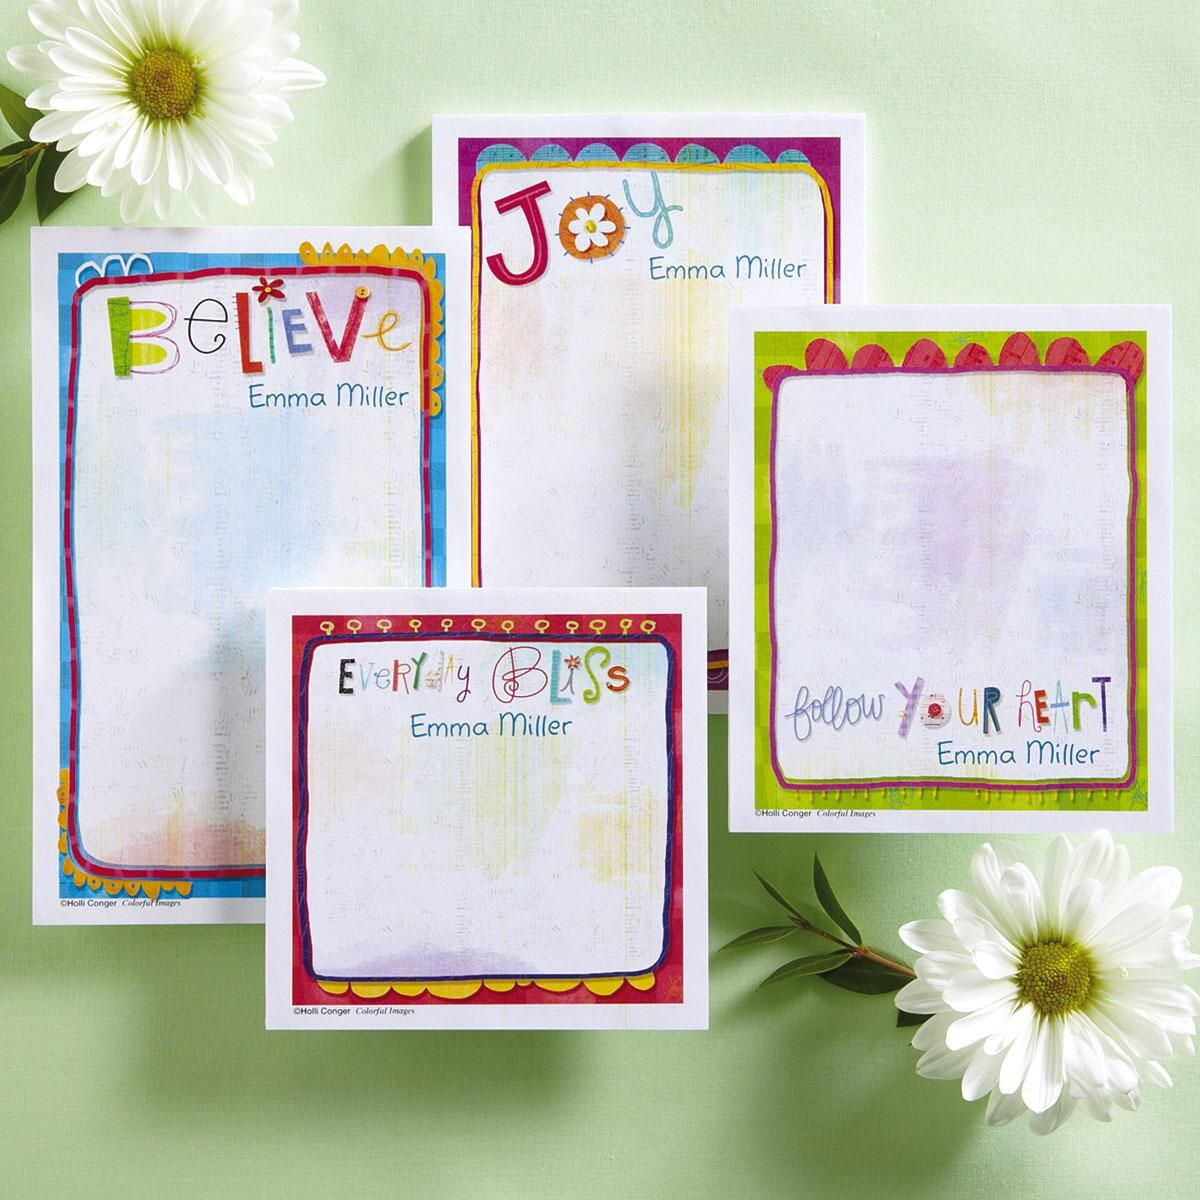 Sprouted Wisdom Memo Pad Sets